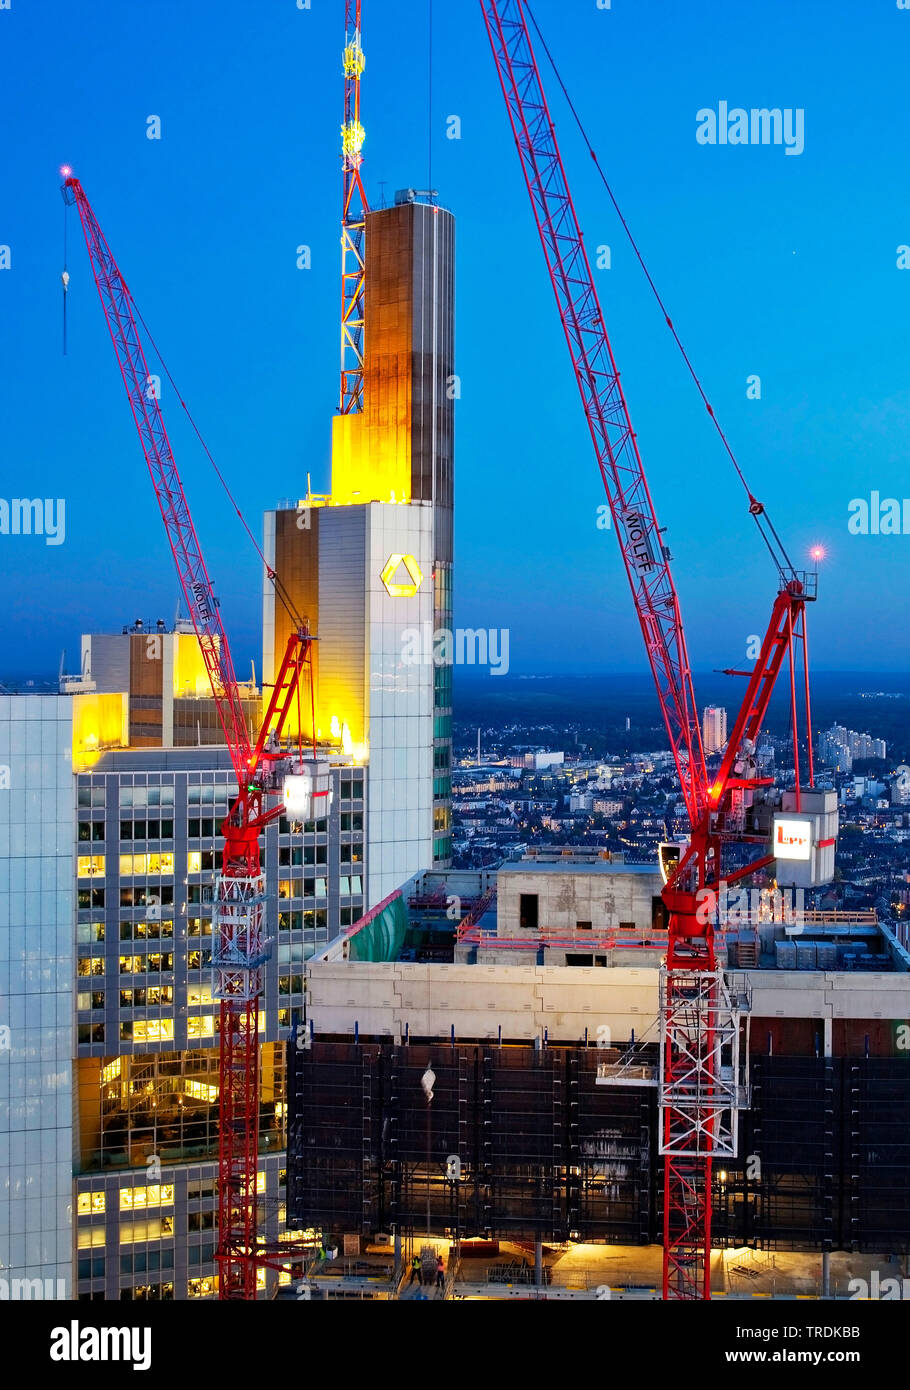 construction site in the financial district next to Commerzbank tower block and Taunus Tower in evening light, Germany, Hesse, Frankfurt am Main Stock Photo